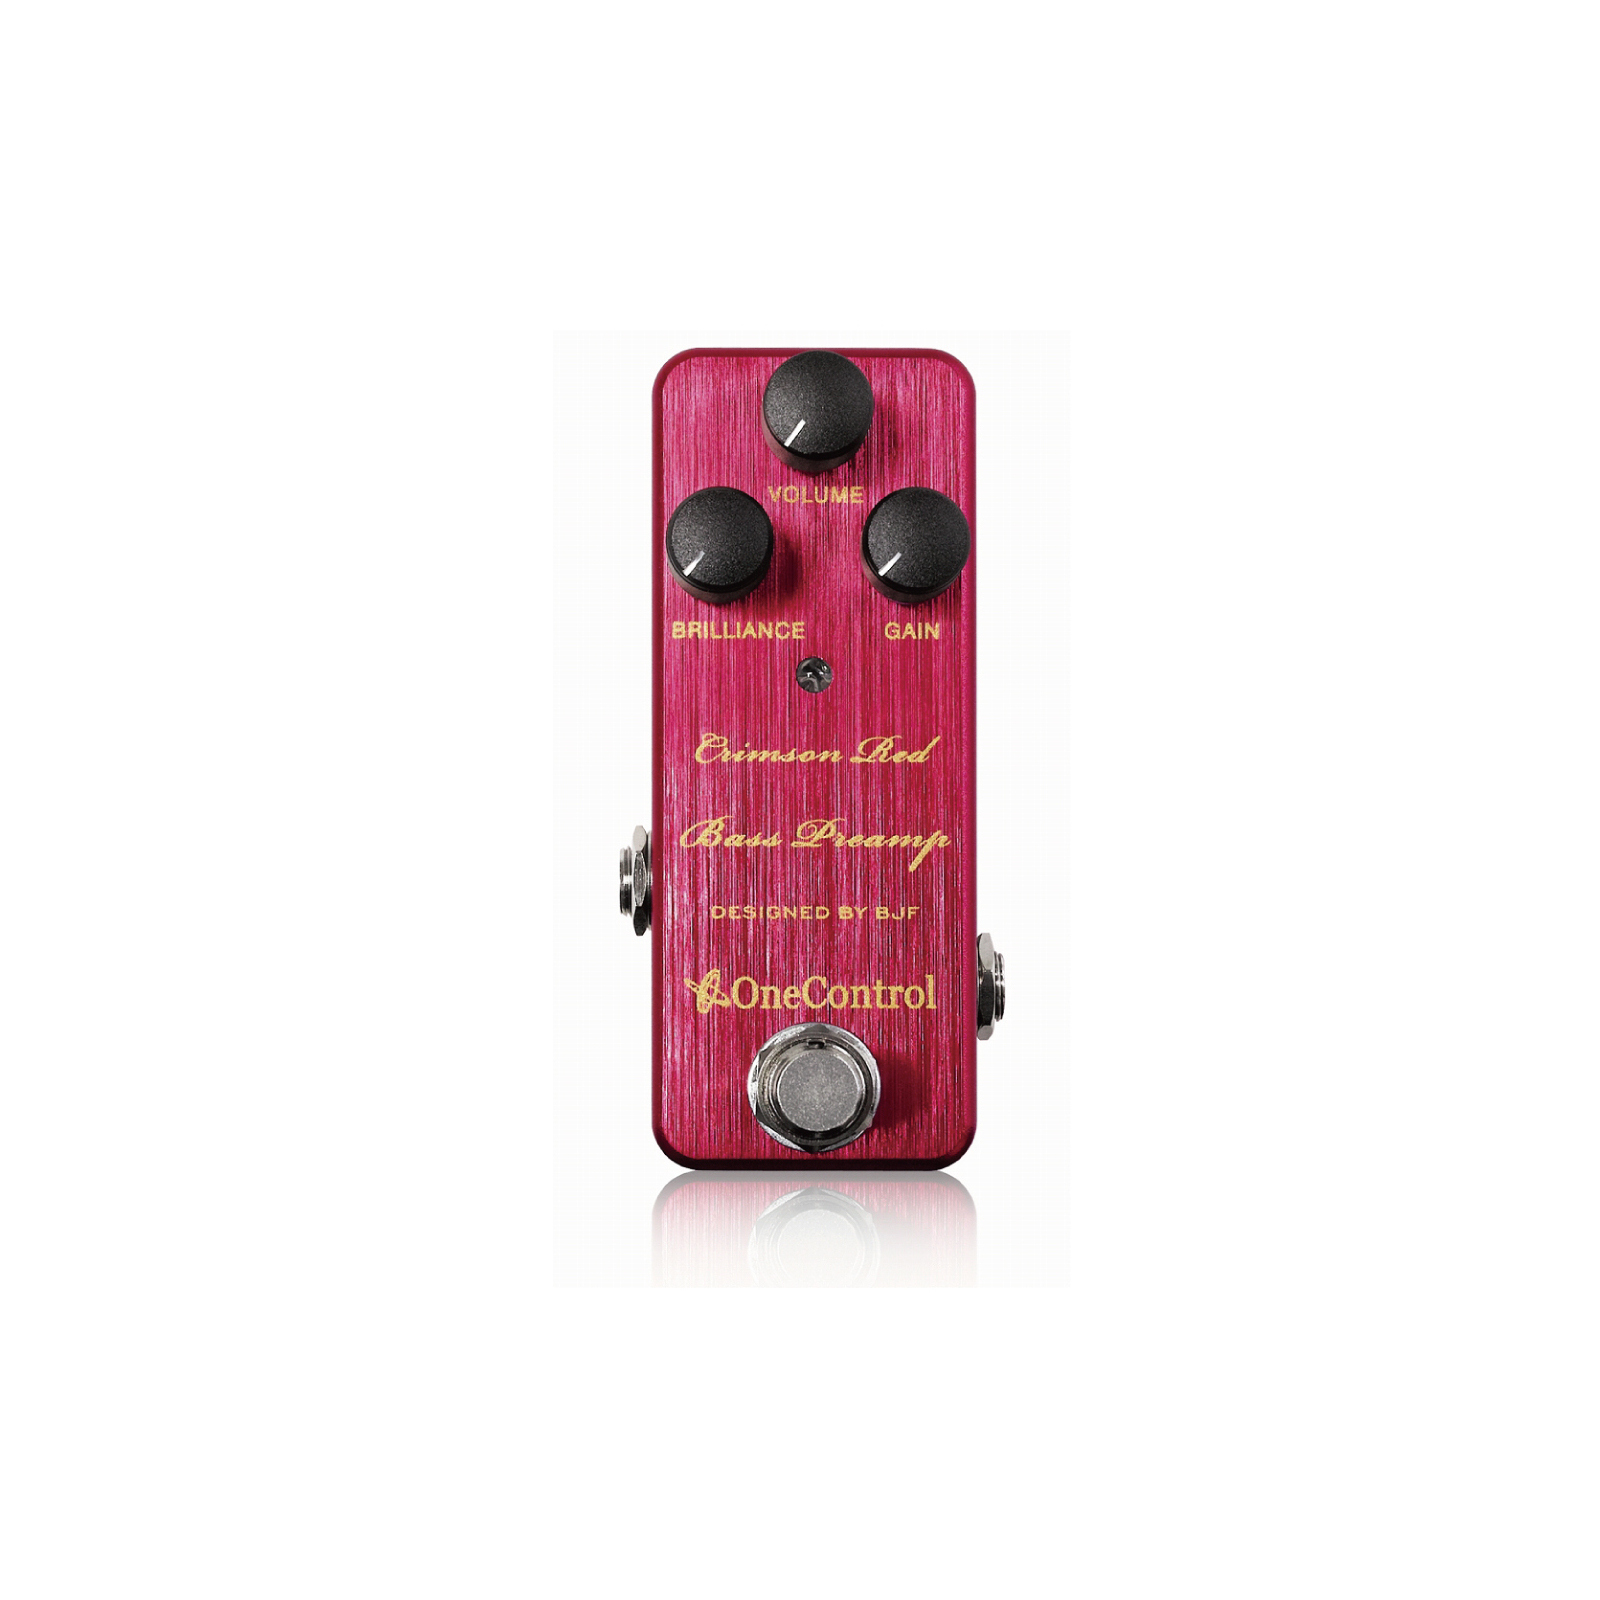 One Control Crimson Red Bass Preamp BJF Series 60s voiced Bass Preamp/Boost Pedal